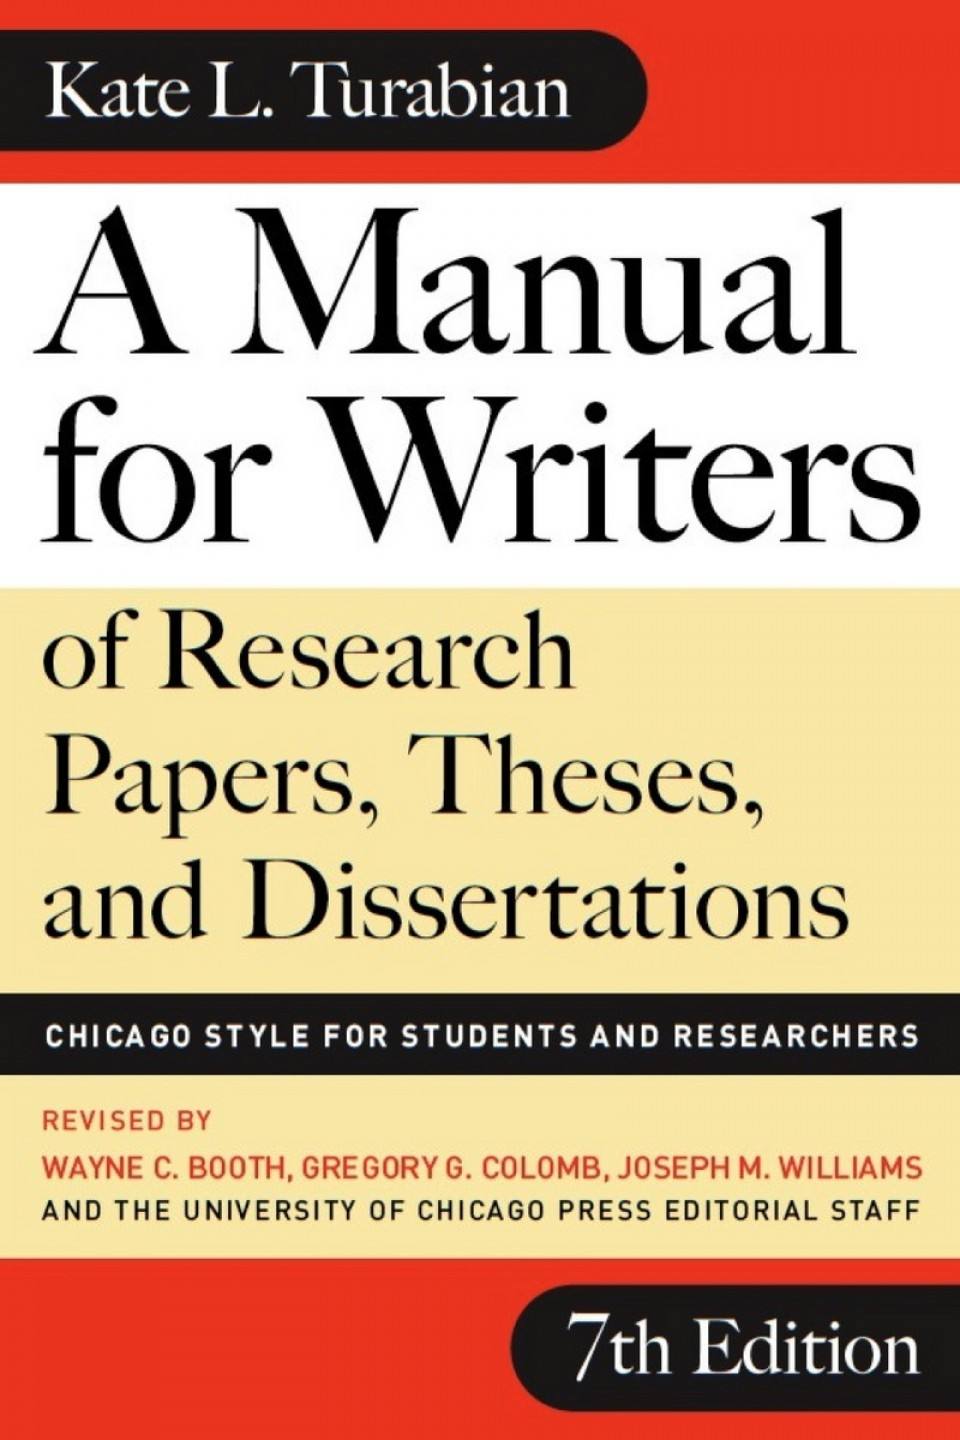 004 Research Paper Manual For Writers Of Papers Theses And Dissertations Turabian Amazing A Pdf 960